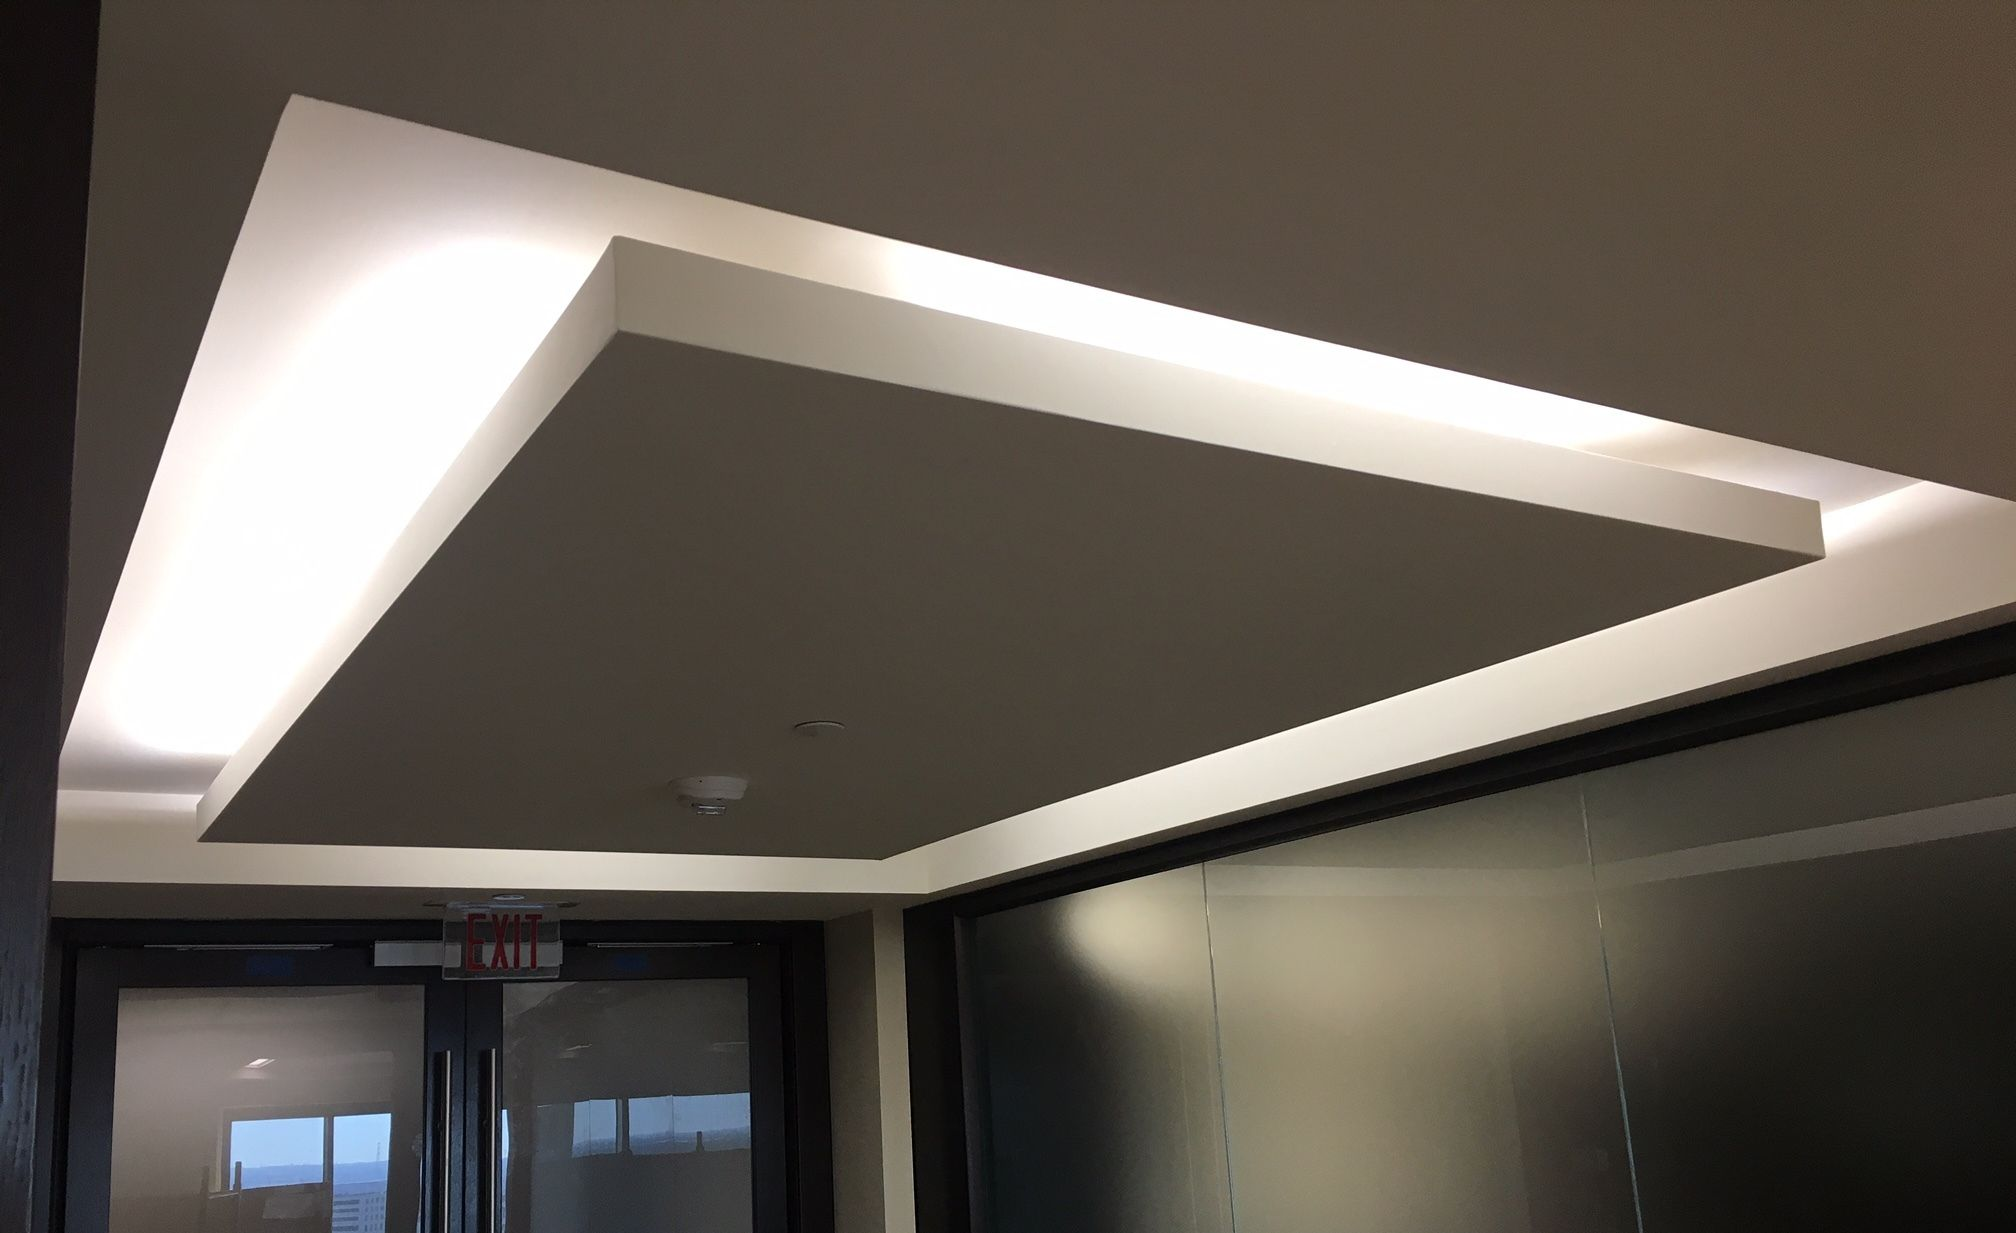 Ceiling Detail Inverted Cove Interior Lighting Ceiling False Ceiling Design Ceiling Design